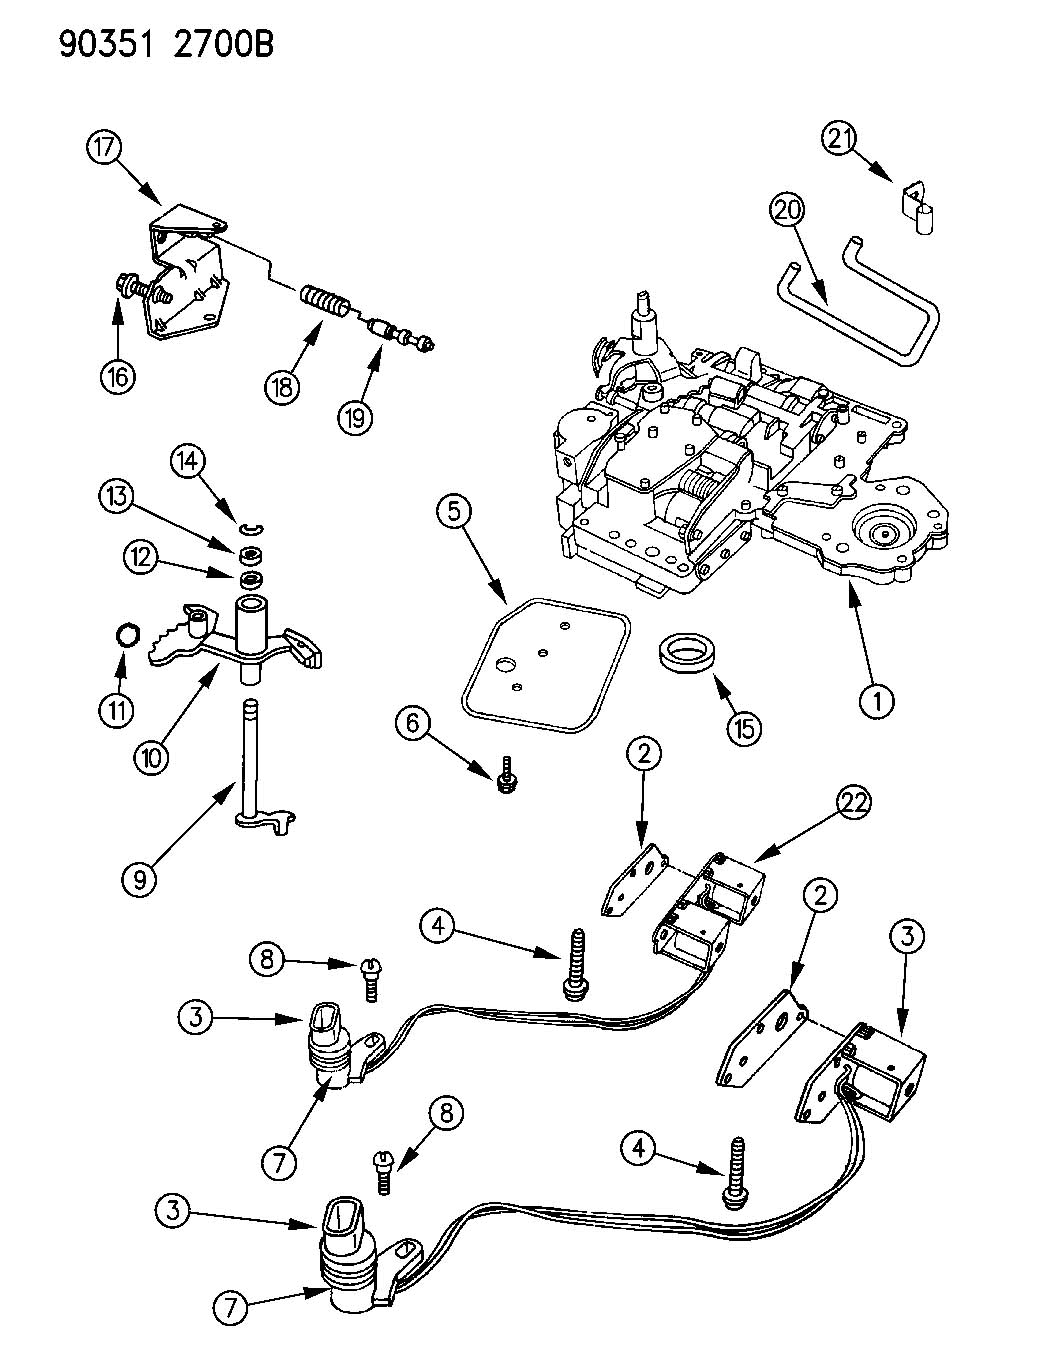 VALVE BODY AUTOMATIC TRANSMISSION, A518 4 SPEED B,N,D BODY